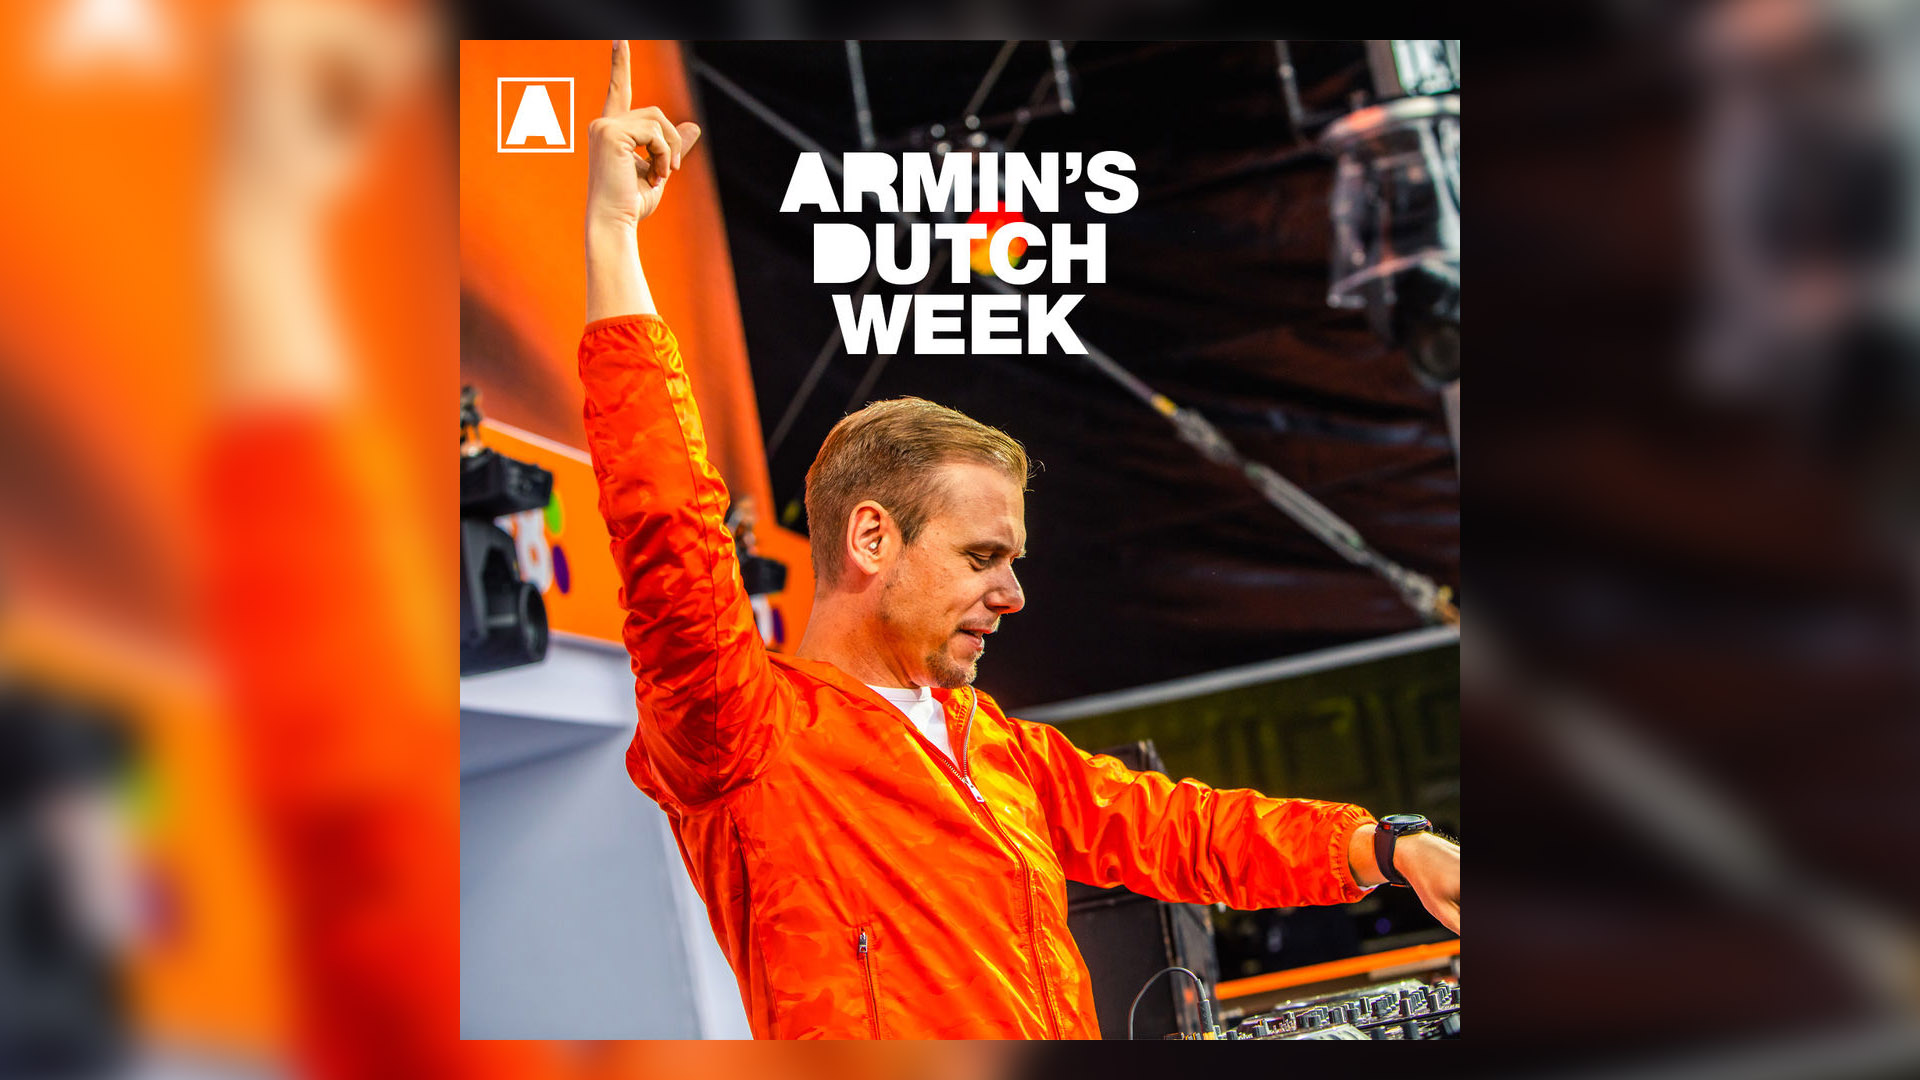 Armin's Dutch Week